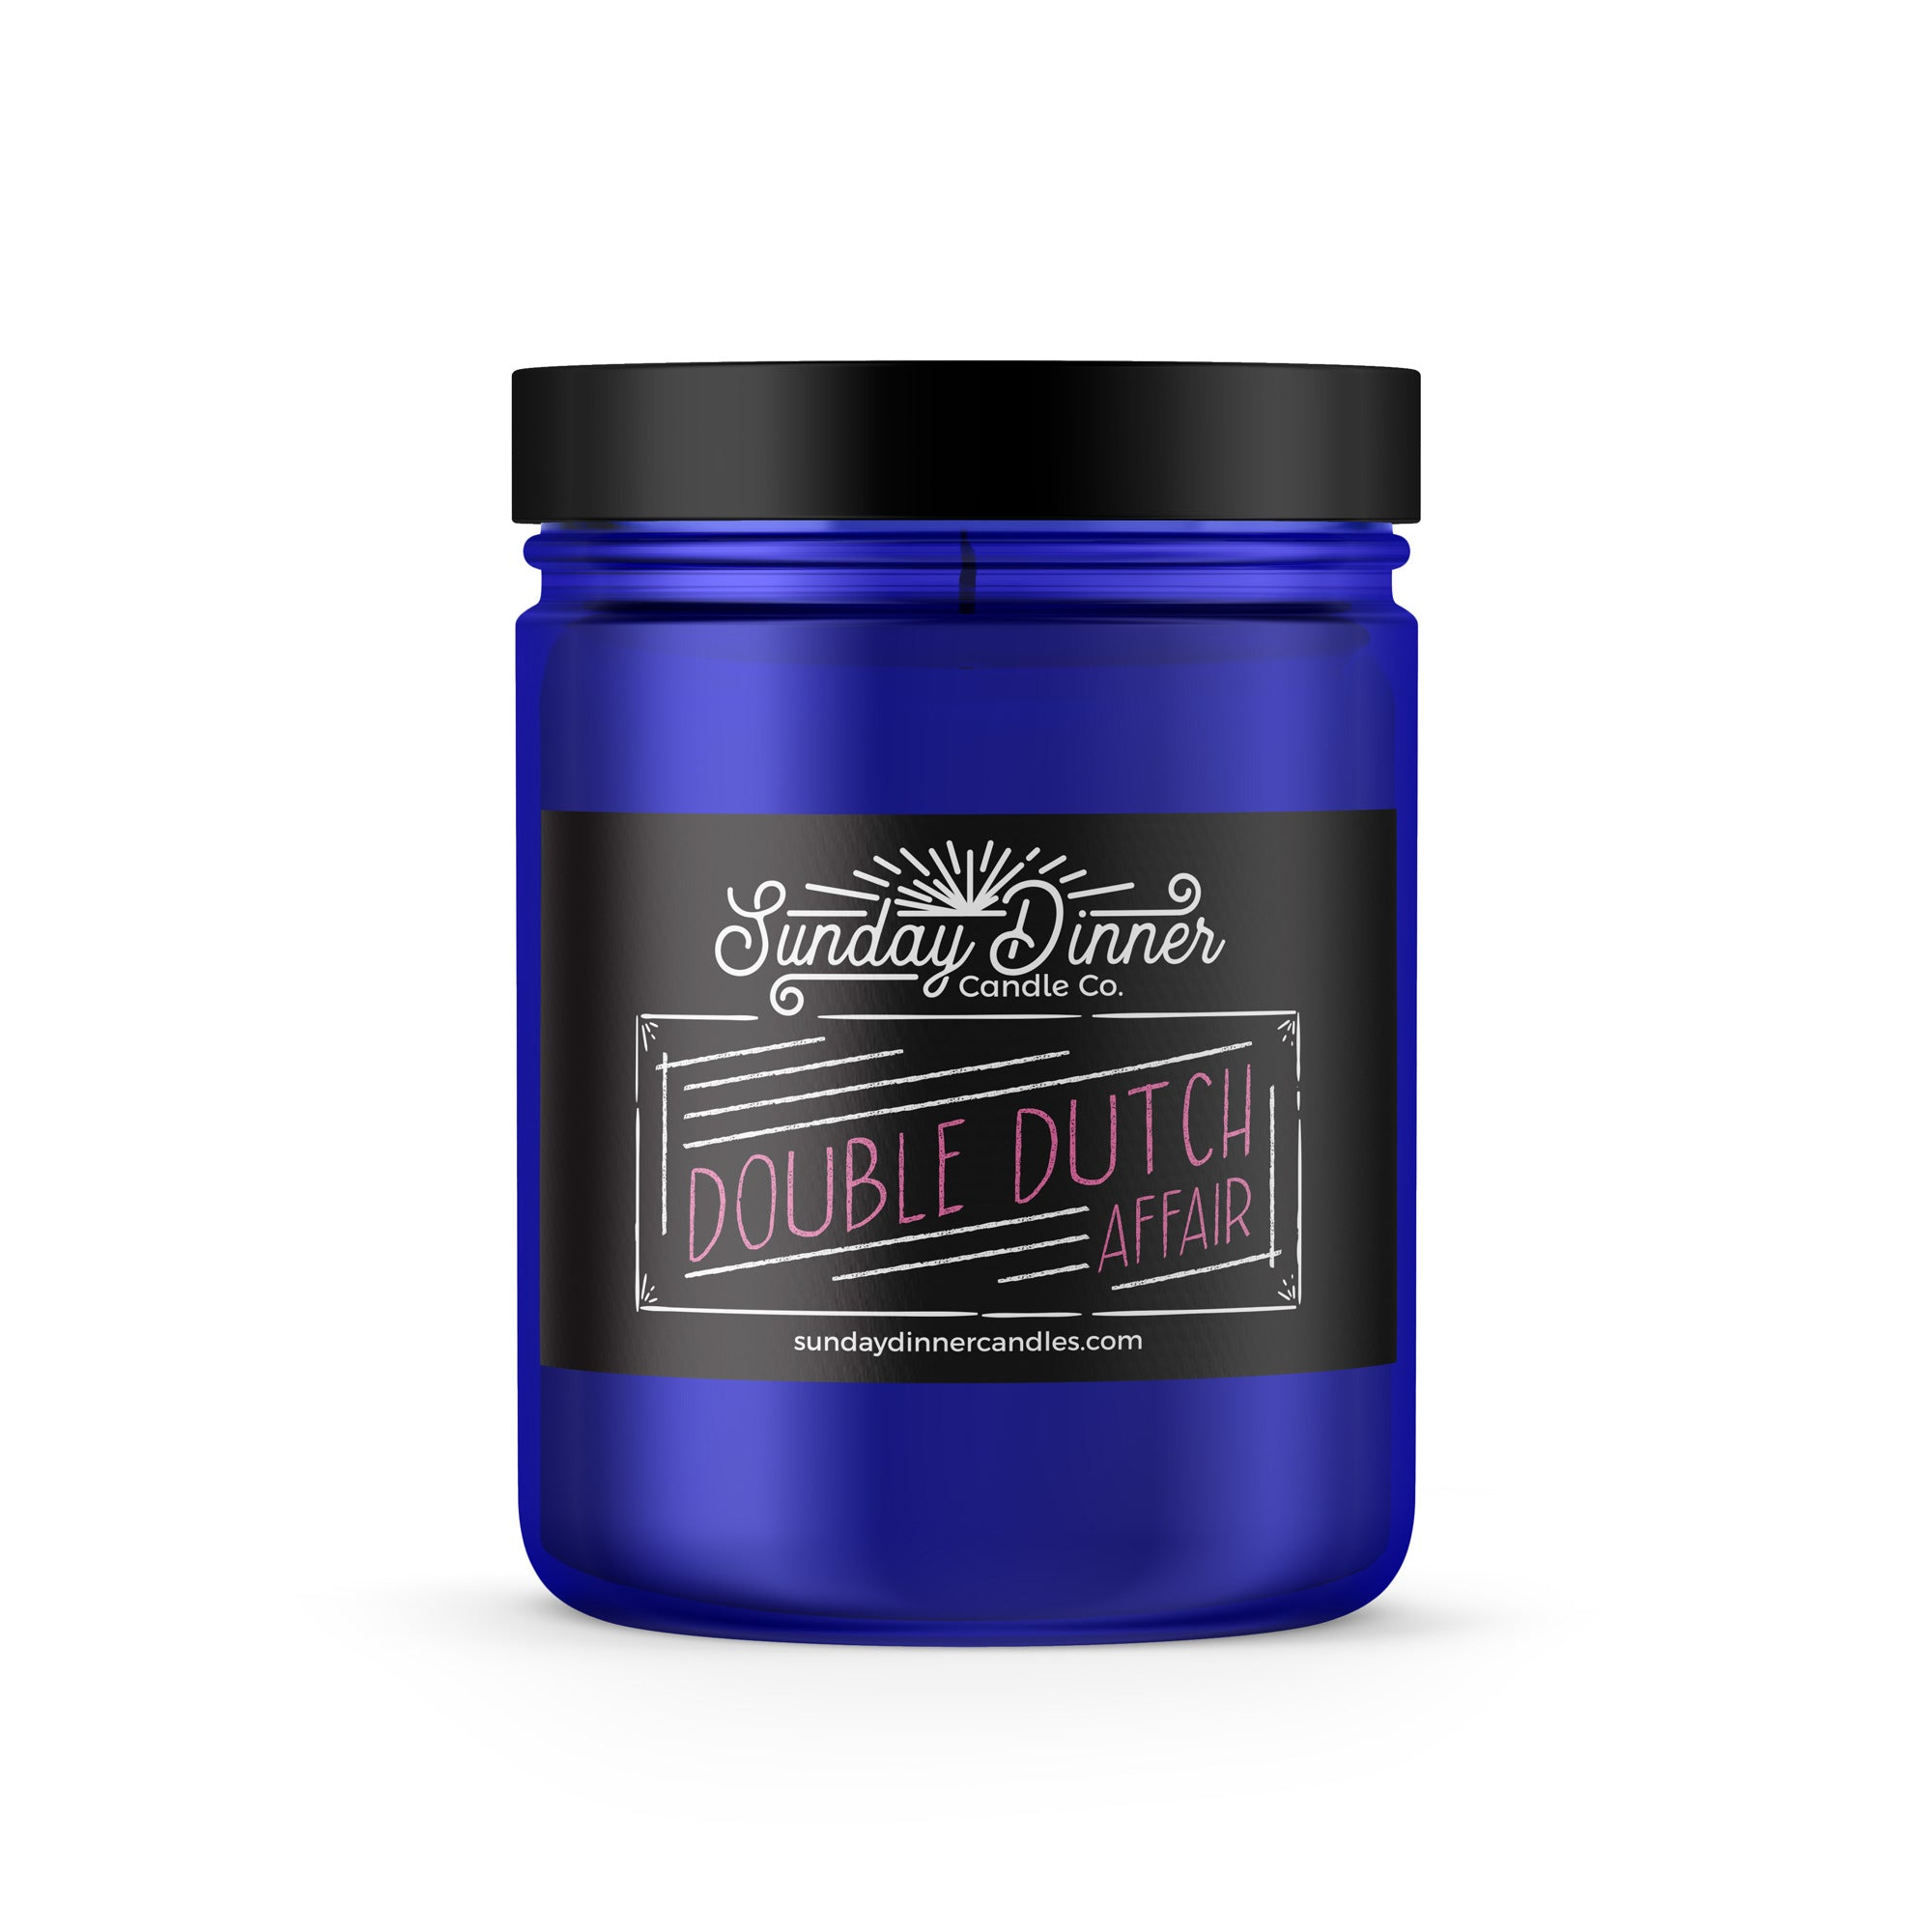 Double Dutch Affair Glass Jar Candle